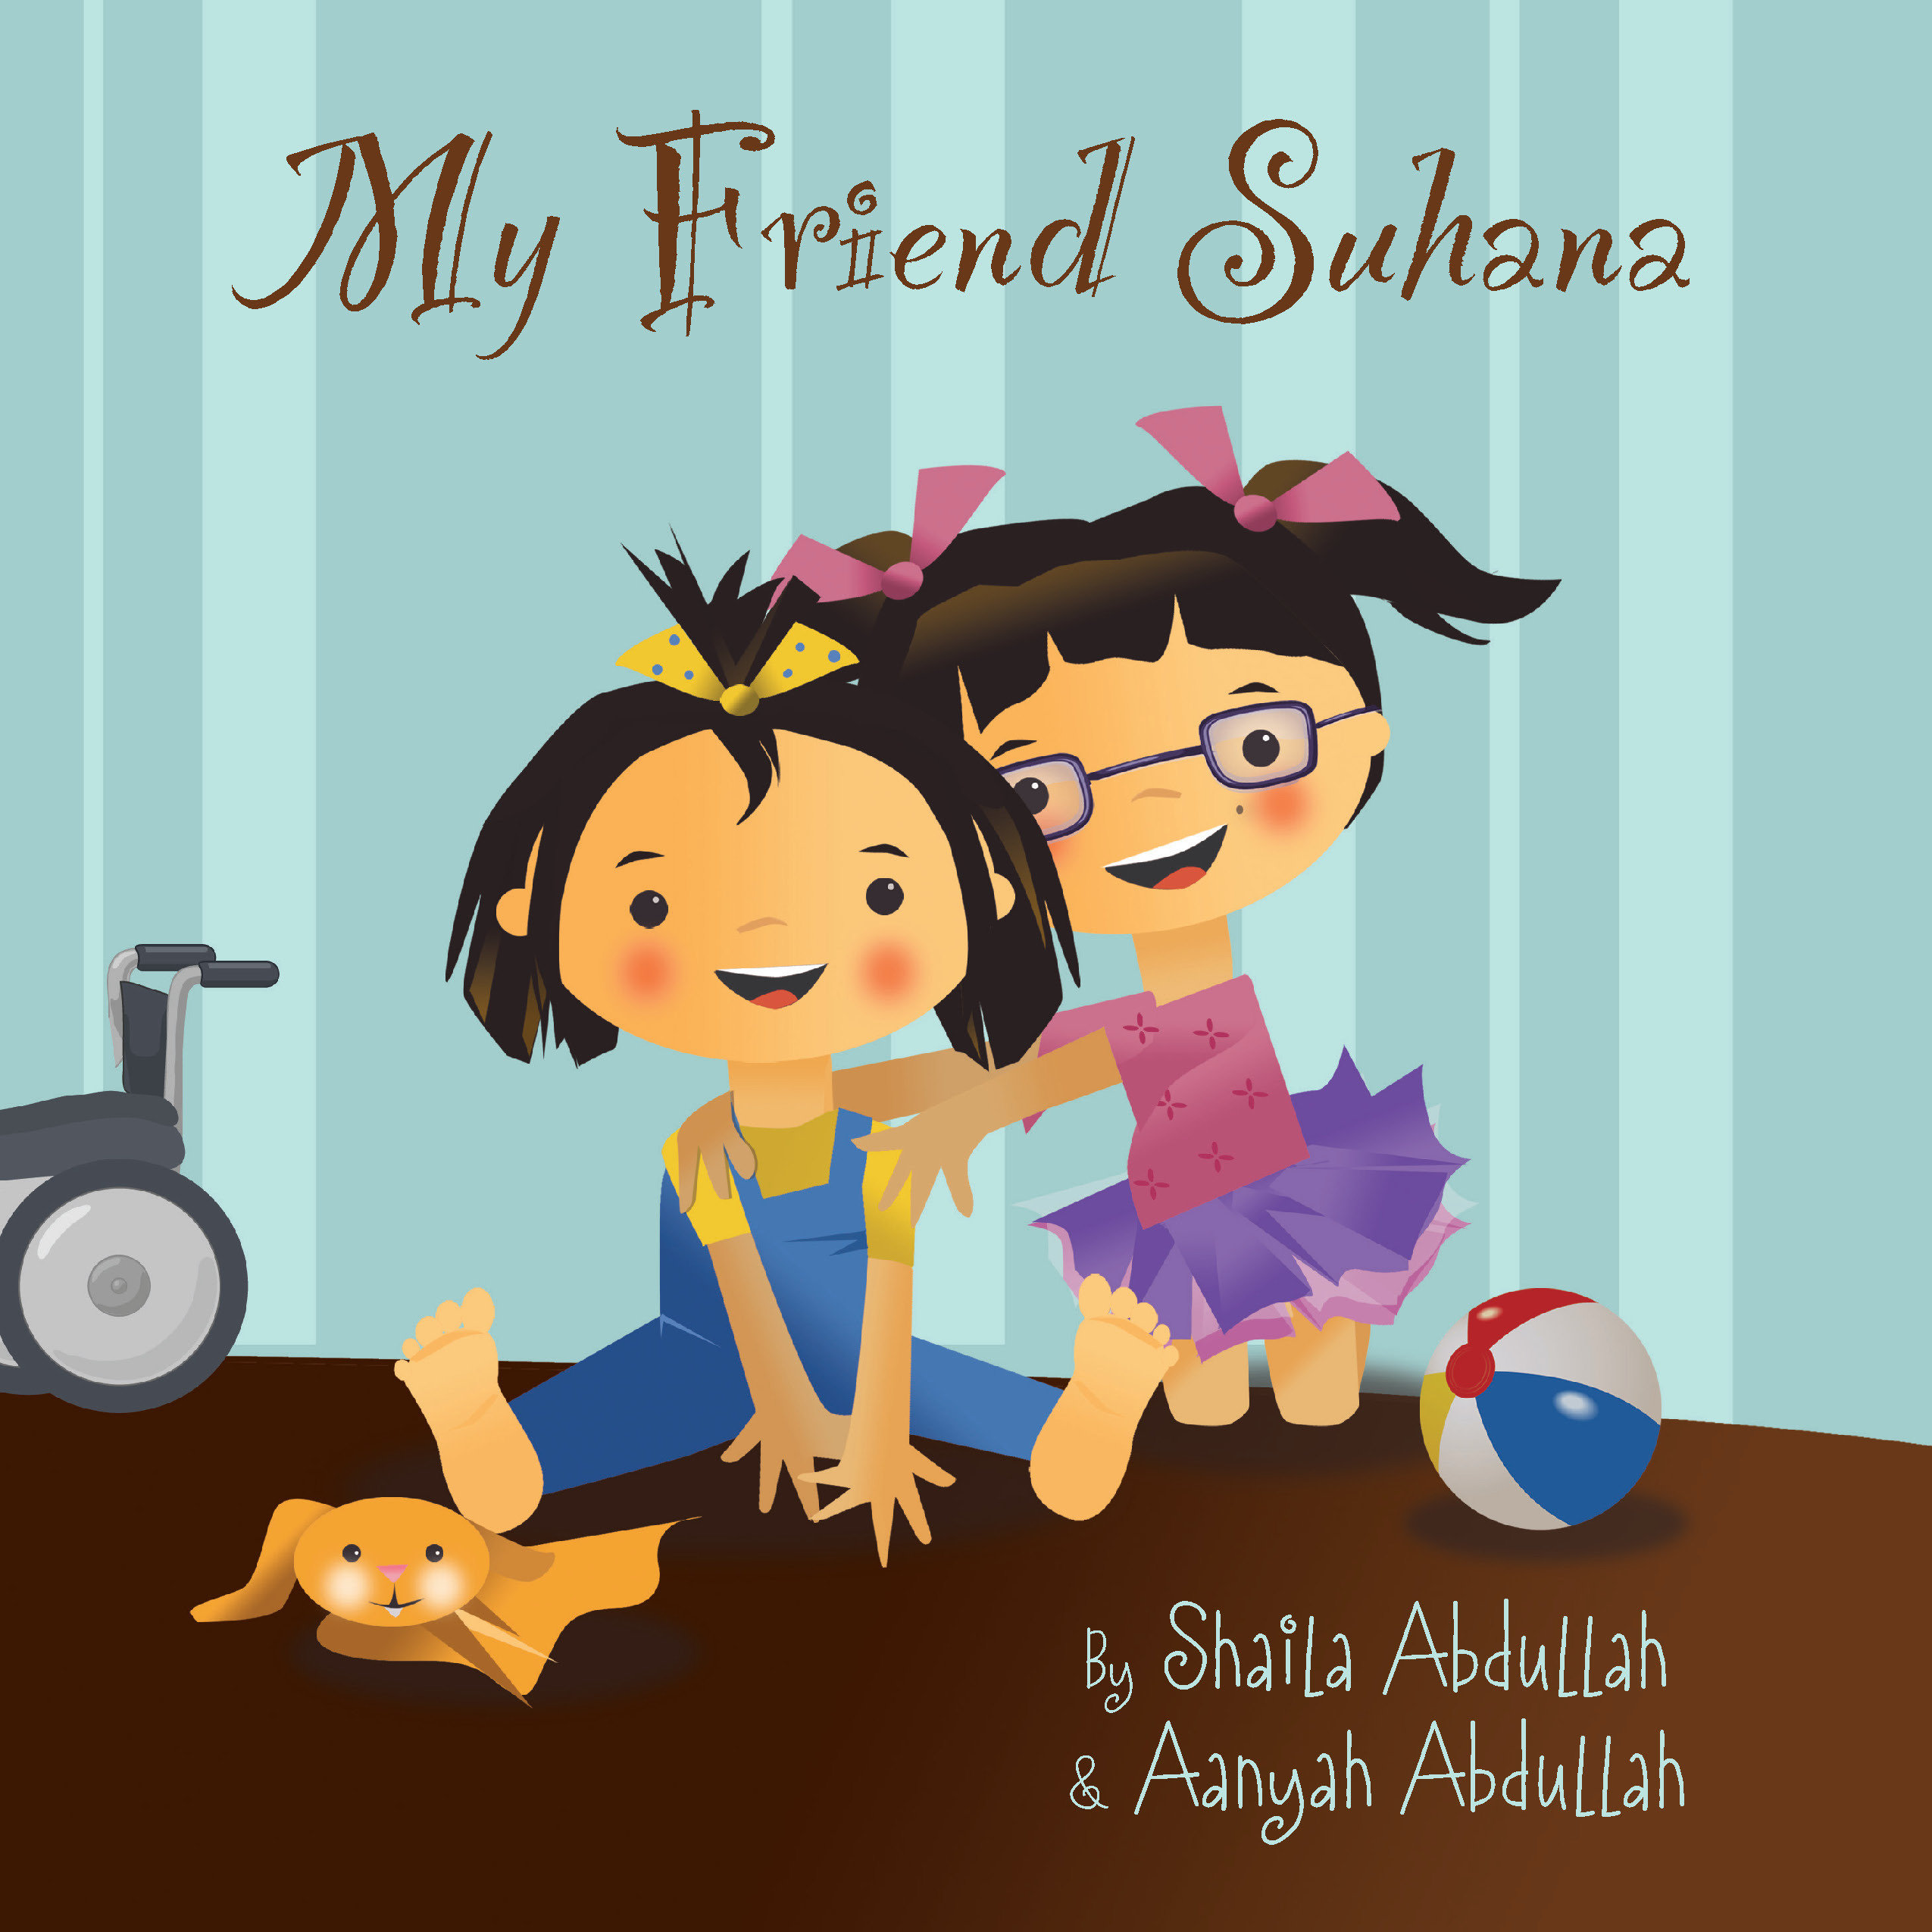 My Friend Suhana: A Story of Friendship and Cerebral Palsy 978-1-61599-211-9